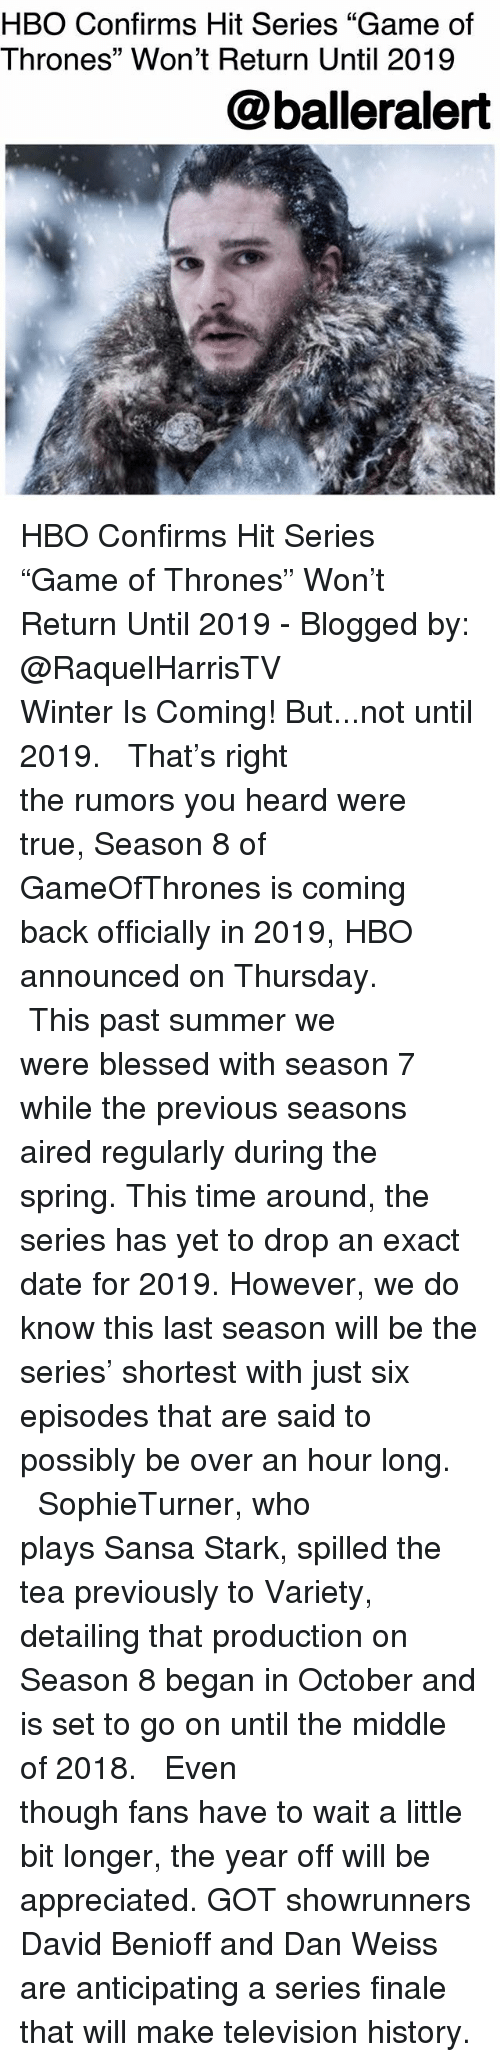 """Sansa Stark: HBO Confirms Hit Series """"Game of  Thrones"""" Won't Return Until 2019  @balleralert HBO Confirms Hit Series """"Game of Thrones"""" Won't Return Until 2019 - Blogged by: @RaquelHarrisTV ⠀⠀⠀⠀⠀⠀⠀⠀⠀ ⠀⠀⠀⠀⠀⠀⠀⠀⠀ Winter Is Coming! But...not until 2019. ⠀⠀⠀⠀⠀⠀⠀⠀⠀ ⠀⠀⠀⠀⠀⠀⠀⠀⠀ That's right the rumors you heard were true, Season 8 of GameOfThrones is coming back officially in 2019, HBO announced on Thursday. ⠀⠀⠀⠀⠀⠀⠀⠀⠀ ⠀⠀⠀⠀⠀⠀⠀⠀⠀ This past summer we were blessed with season 7 while the previous seasons aired regularly during the spring. This time around, the series has yet to drop an exact date for 2019. However, we do know this last season will be the series' shortest with just six episodes that are said to possibly be over an hour long. ⠀⠀⠀⠀⠀⠀⠀⠀⠀ ⠀⠀⠀⠀⠀⠀⠀⠀⠀ SophieTurner, who plays Sansa Stark, spilled the tea previously to Variety, detailing that production on Season 8 began in October and is set to go on until the middle of 2018. ⠀⠀⠀⠀⠀⠀⠀⠀⠀ ⠀⠀⠀⠀⠀⠀⠀⠀⠀ Even though fans have to wait a little bit longer, the year off will be appreciated. GOT showrunners David Benioff and Dan Weiss are anticipating a series finale that will make television history."""